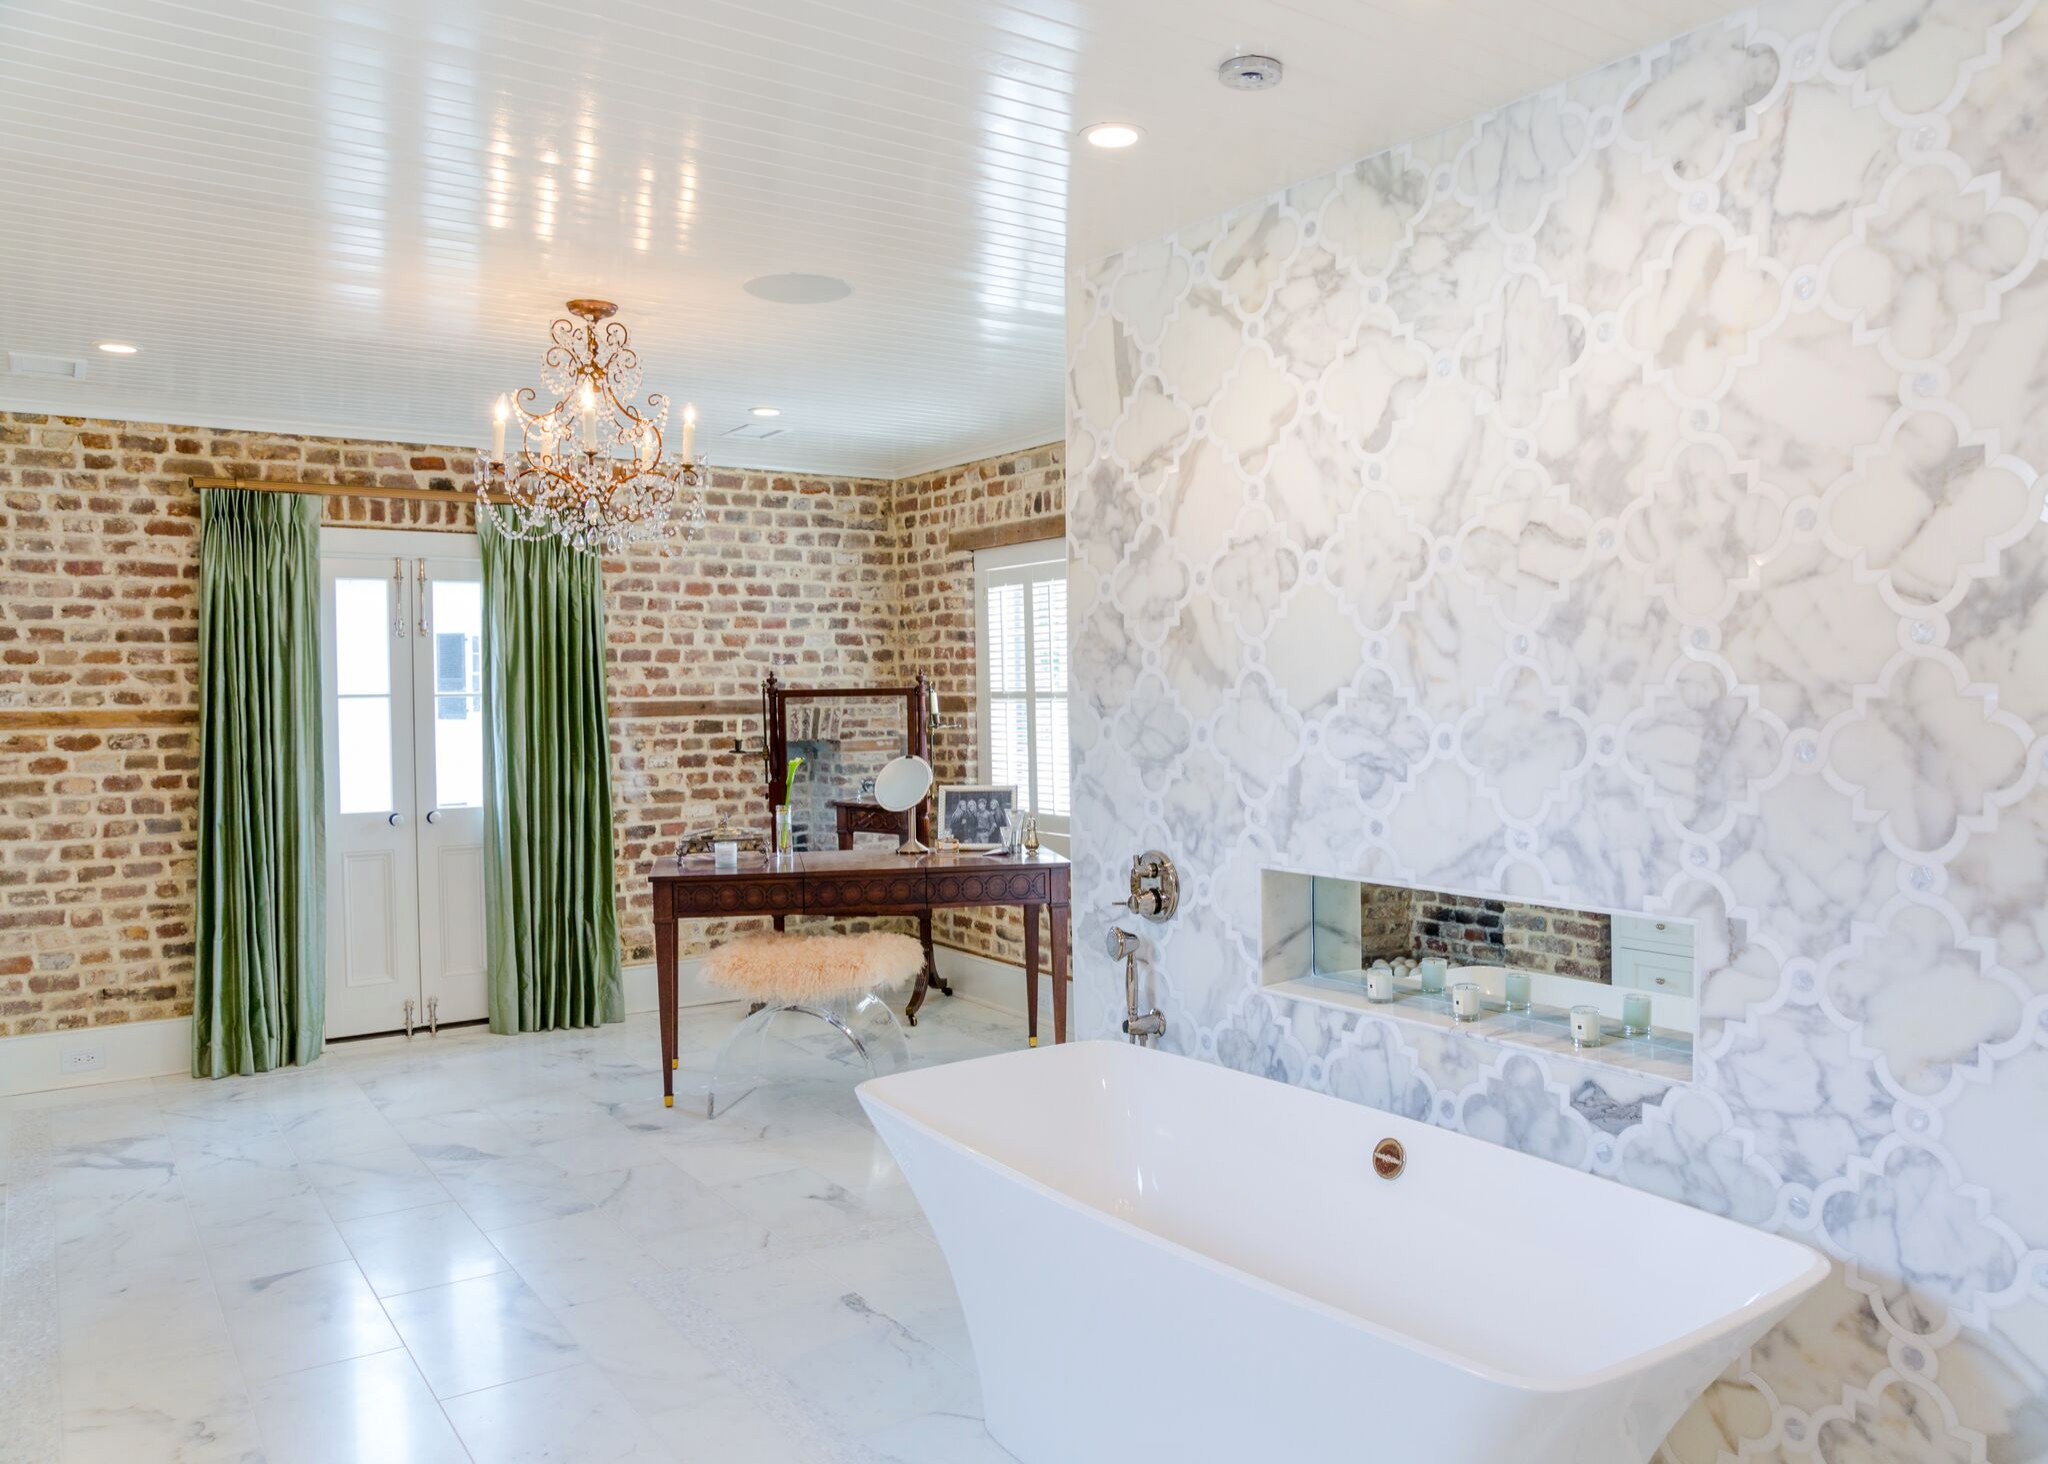 DAZZLING feature tile wall behind the tub.